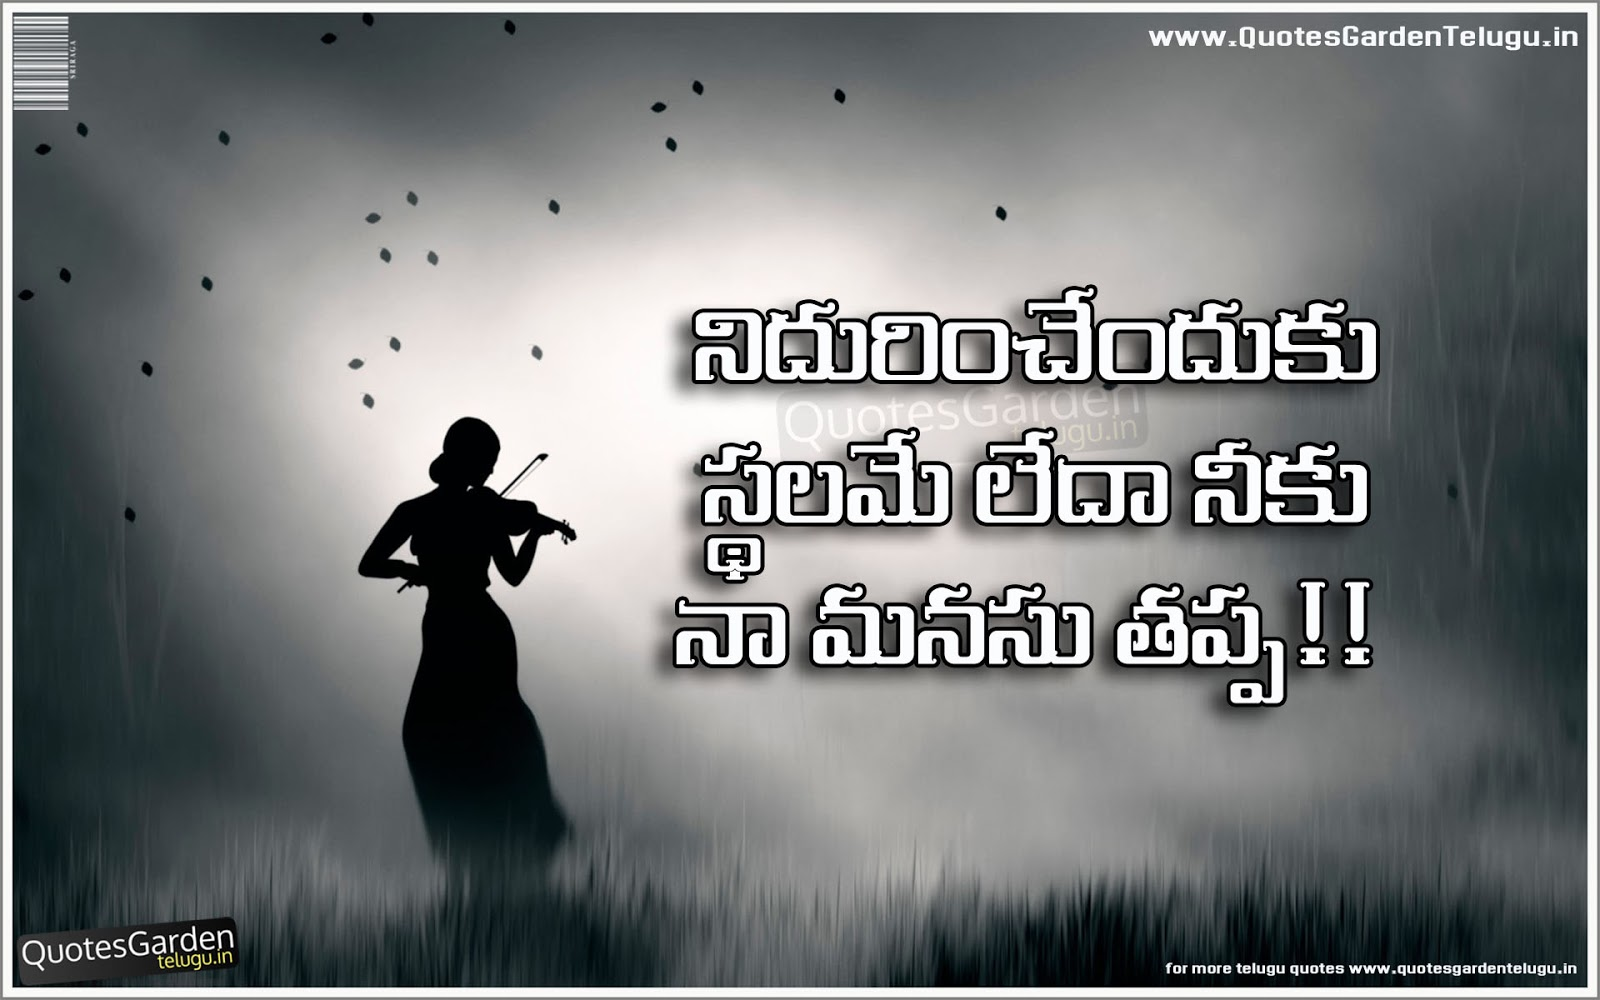 new telugu love quotes quotes garden telugu telugu